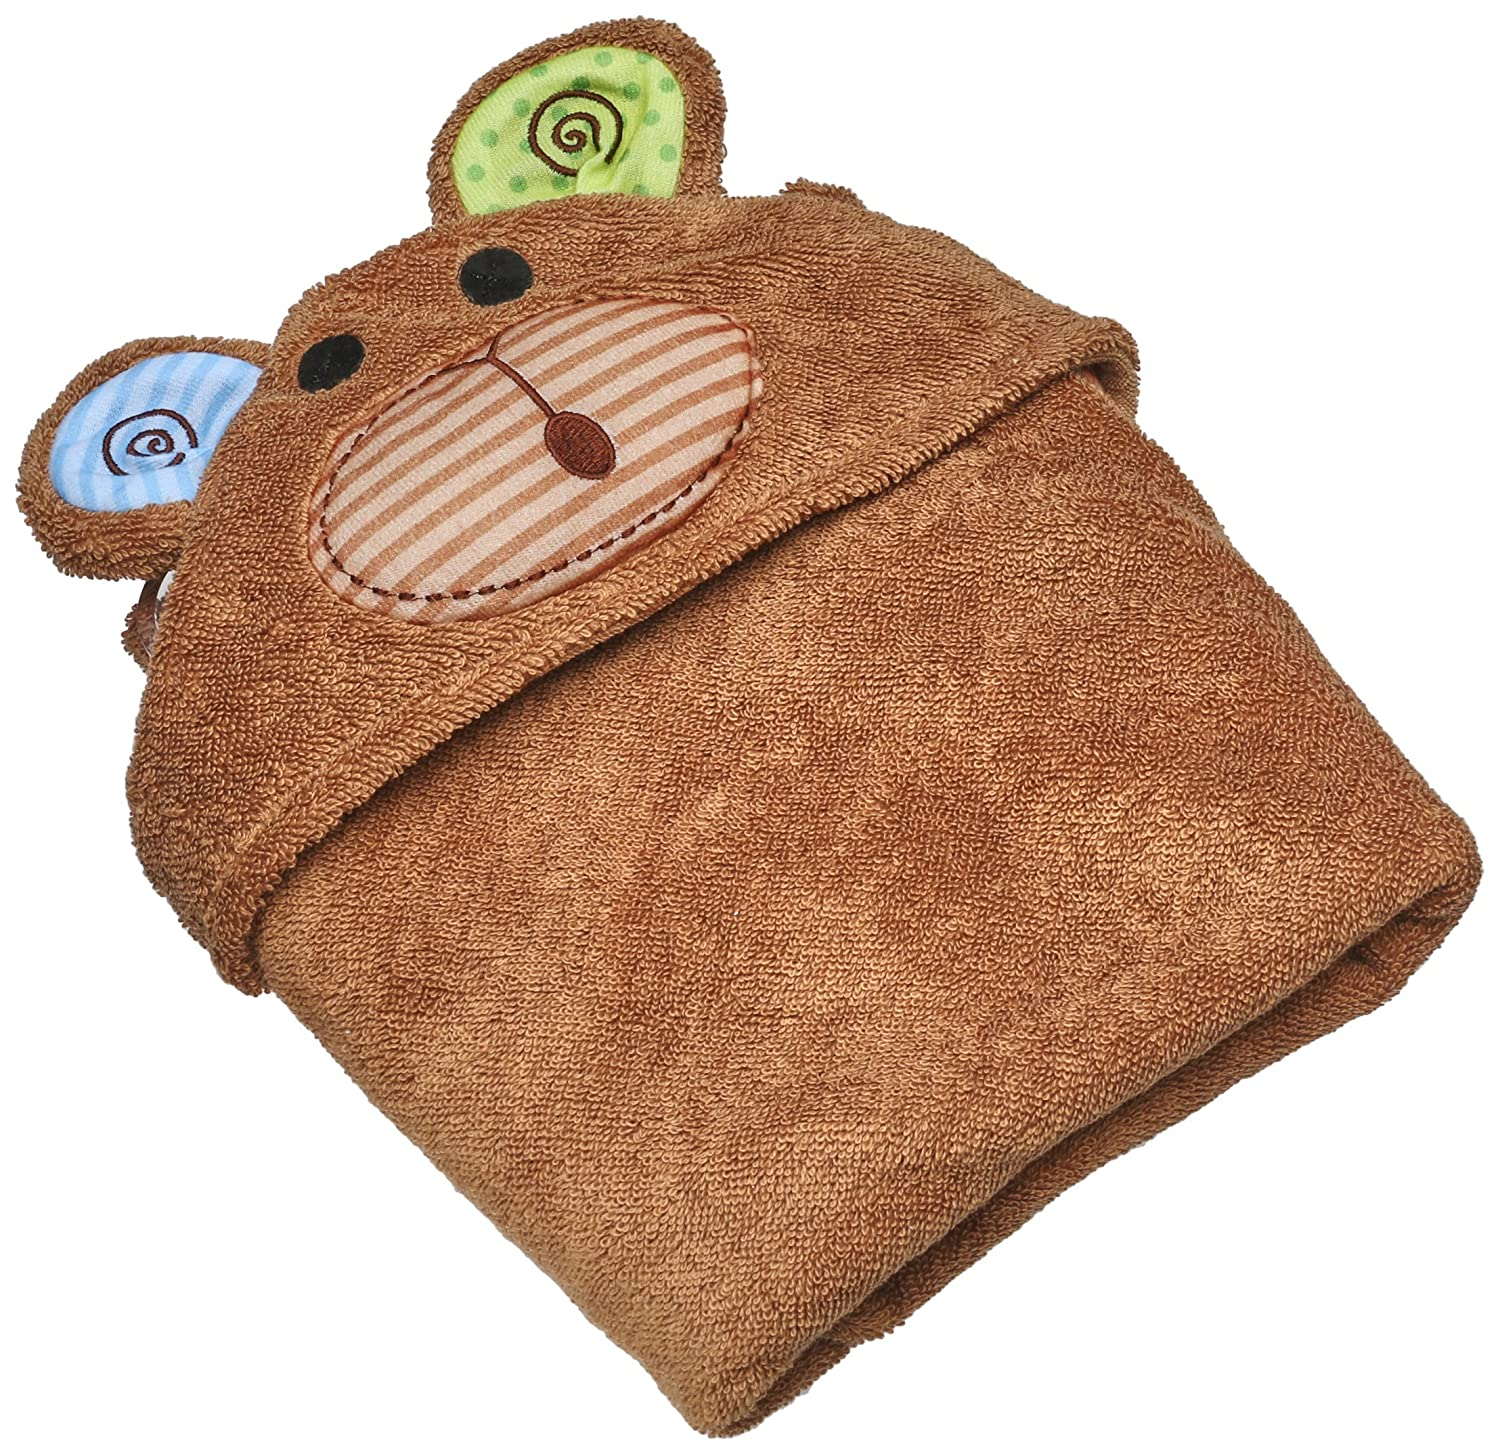 Zoocchni - Baby Towel - Max the Monkey Zoocchini ZOO1004